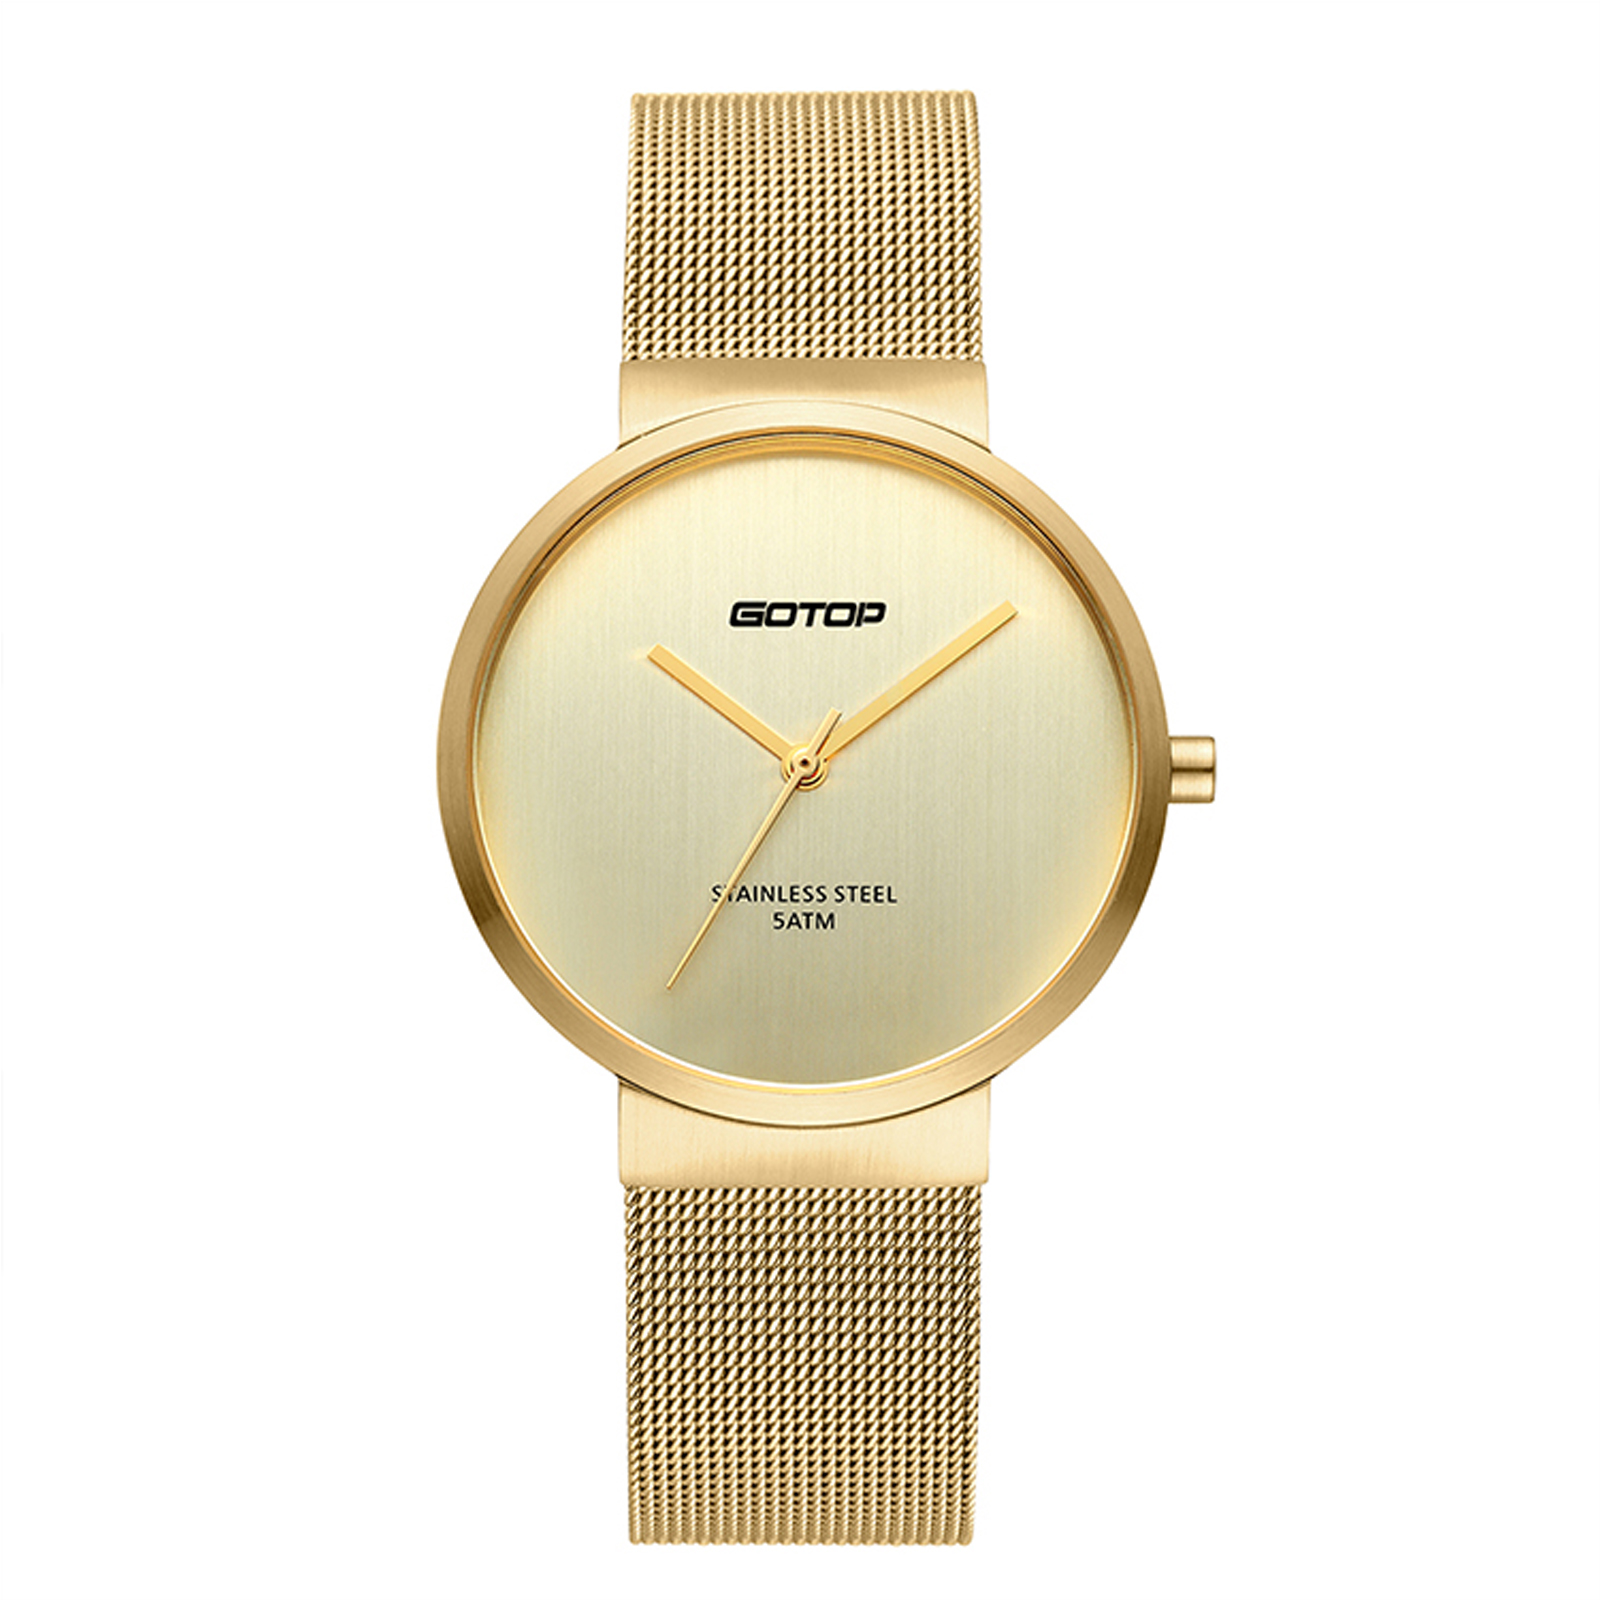 All Gold Women's Watch With Mesh Band And Slim Bezel